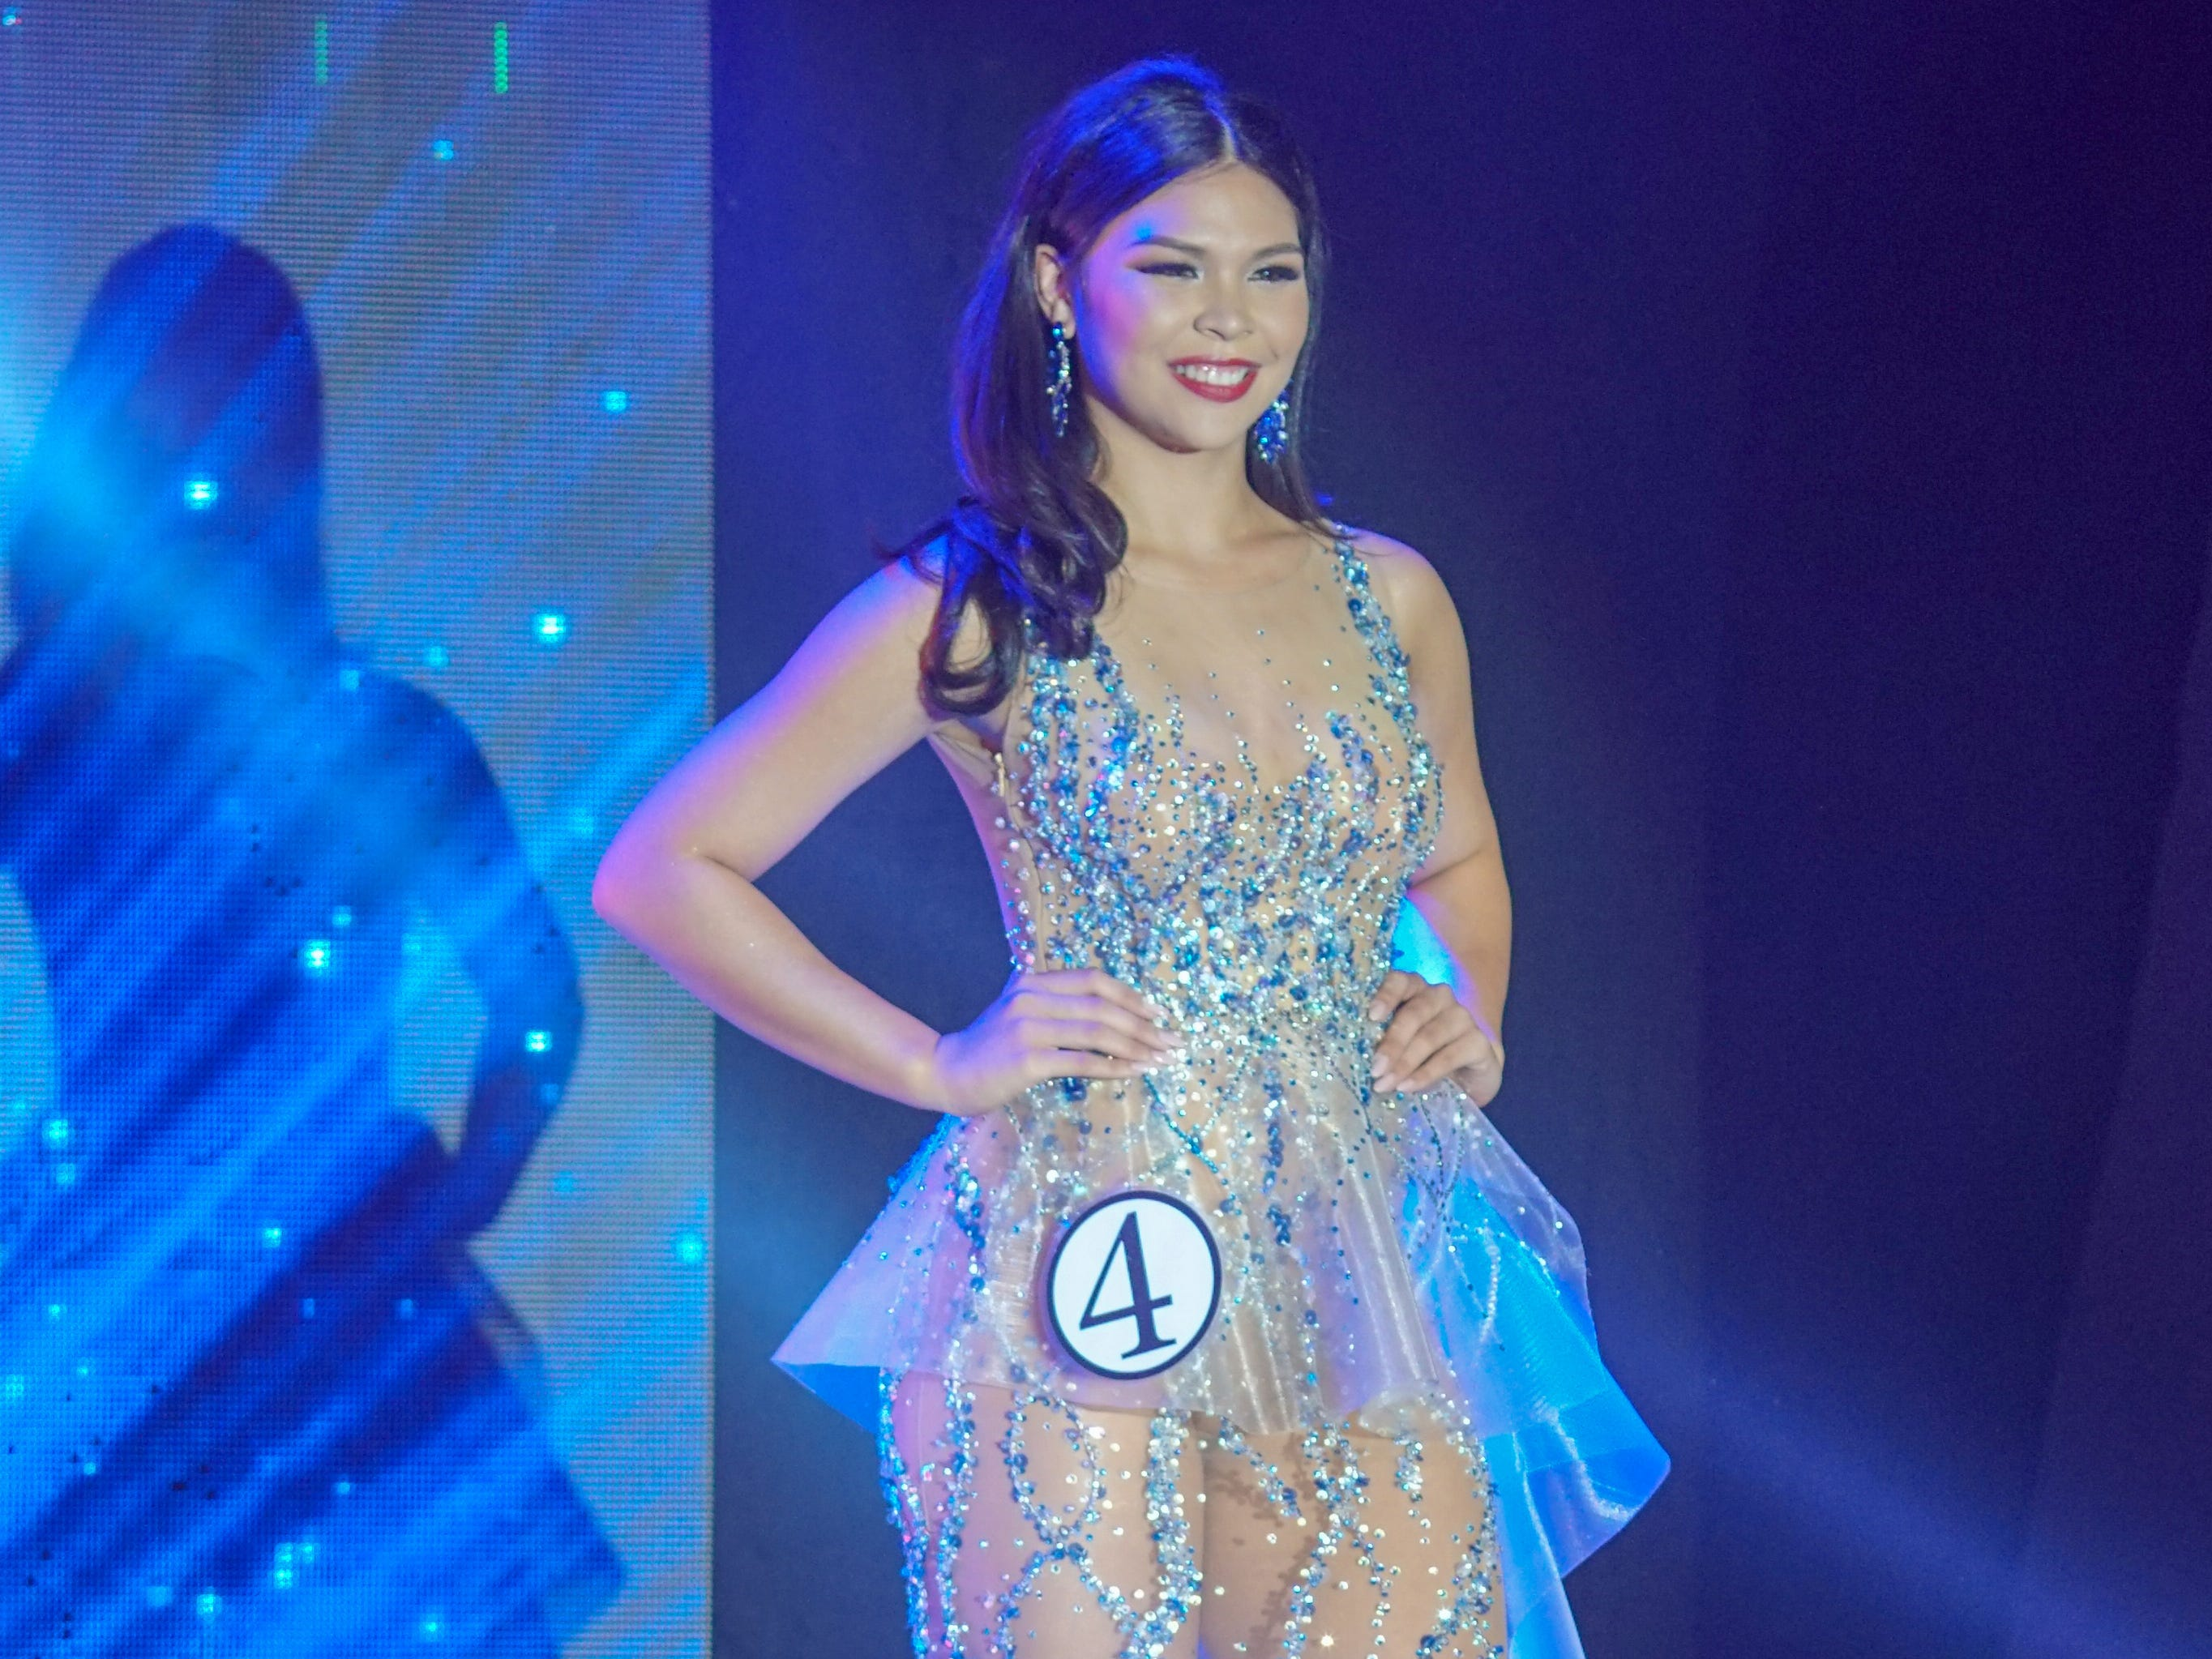 Contestant #4 Mariana Quintanilla Kier, 18, from Sinajana, is all smiles in her evening gown during the Miss World Guam pageant held at Sheraton Laguna Guam Resort.